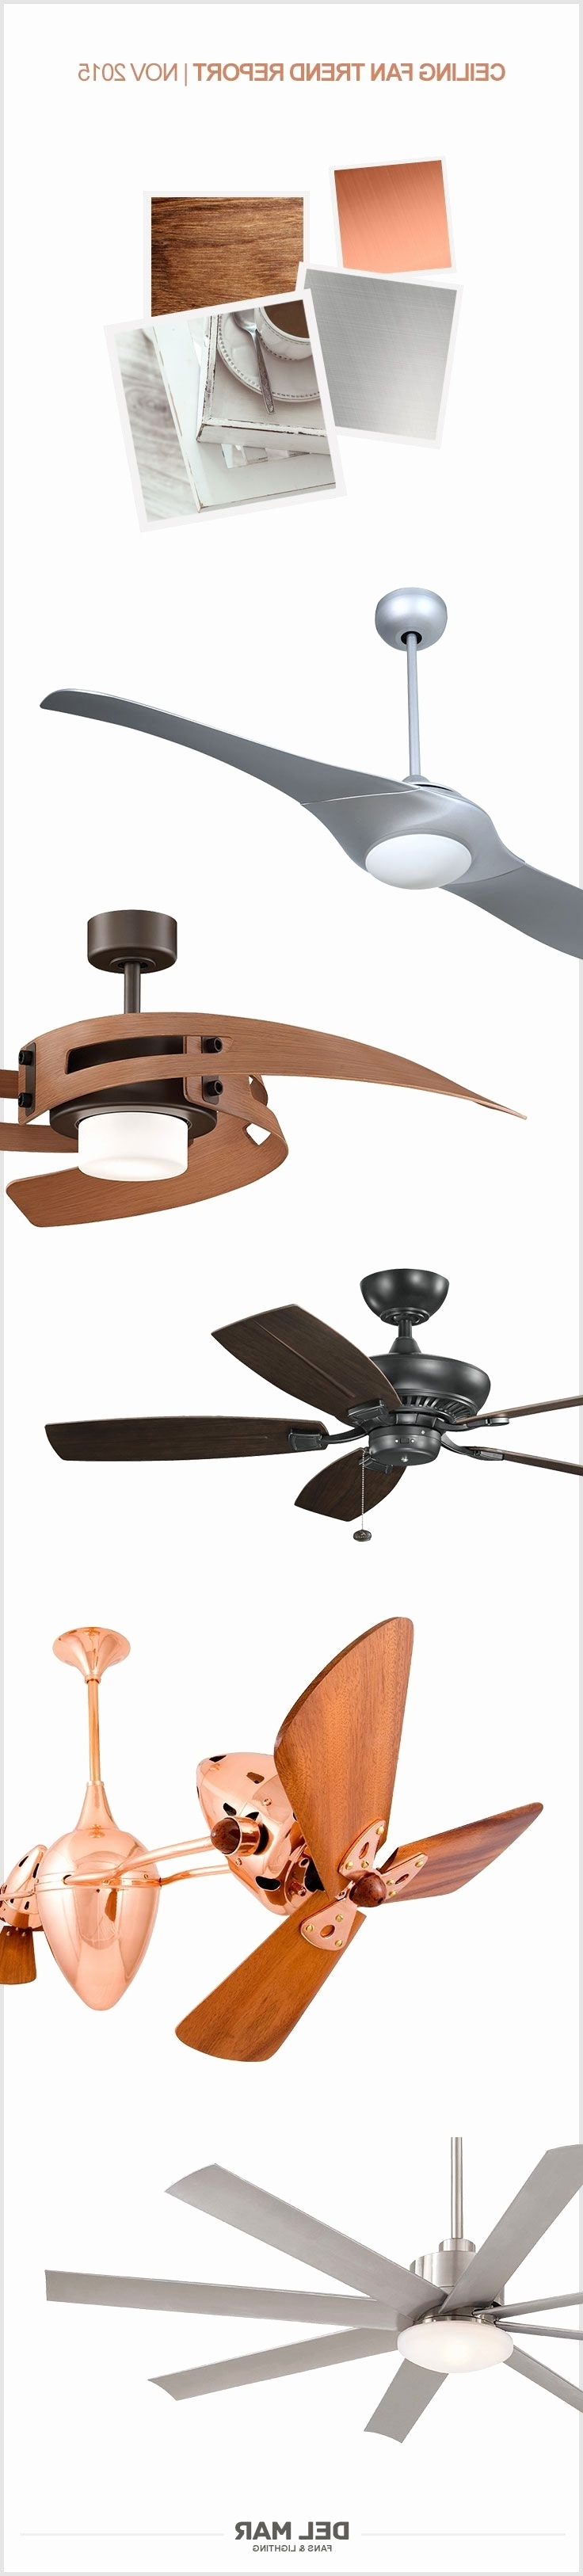 Outdoor Ceiling Fans With High Cfm Throughout 2019 High Cfm Ceiling Fan Outdoor – Ceiling Design Ideas (Gallery 13 of 20)